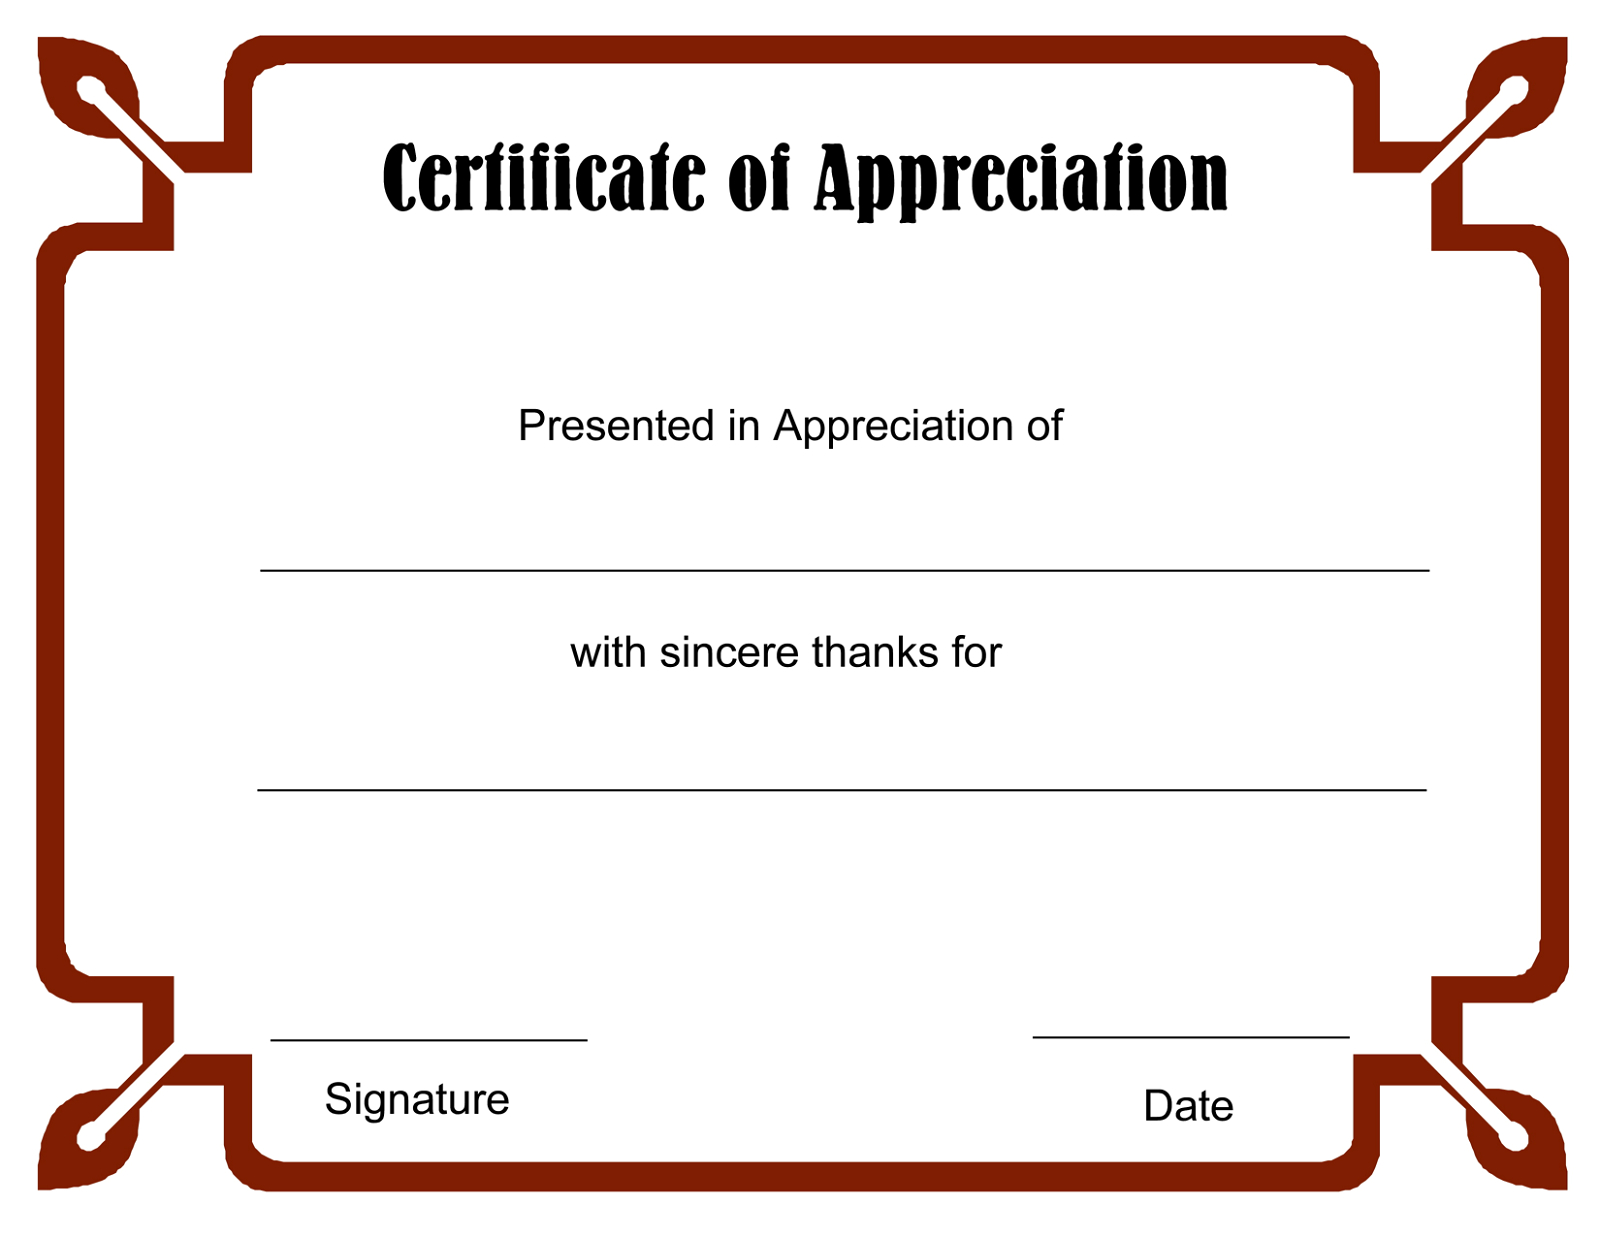 Blank Certificate Templates To Print | Blank Certificate Templates - Free Printable Blank Certificate Templates